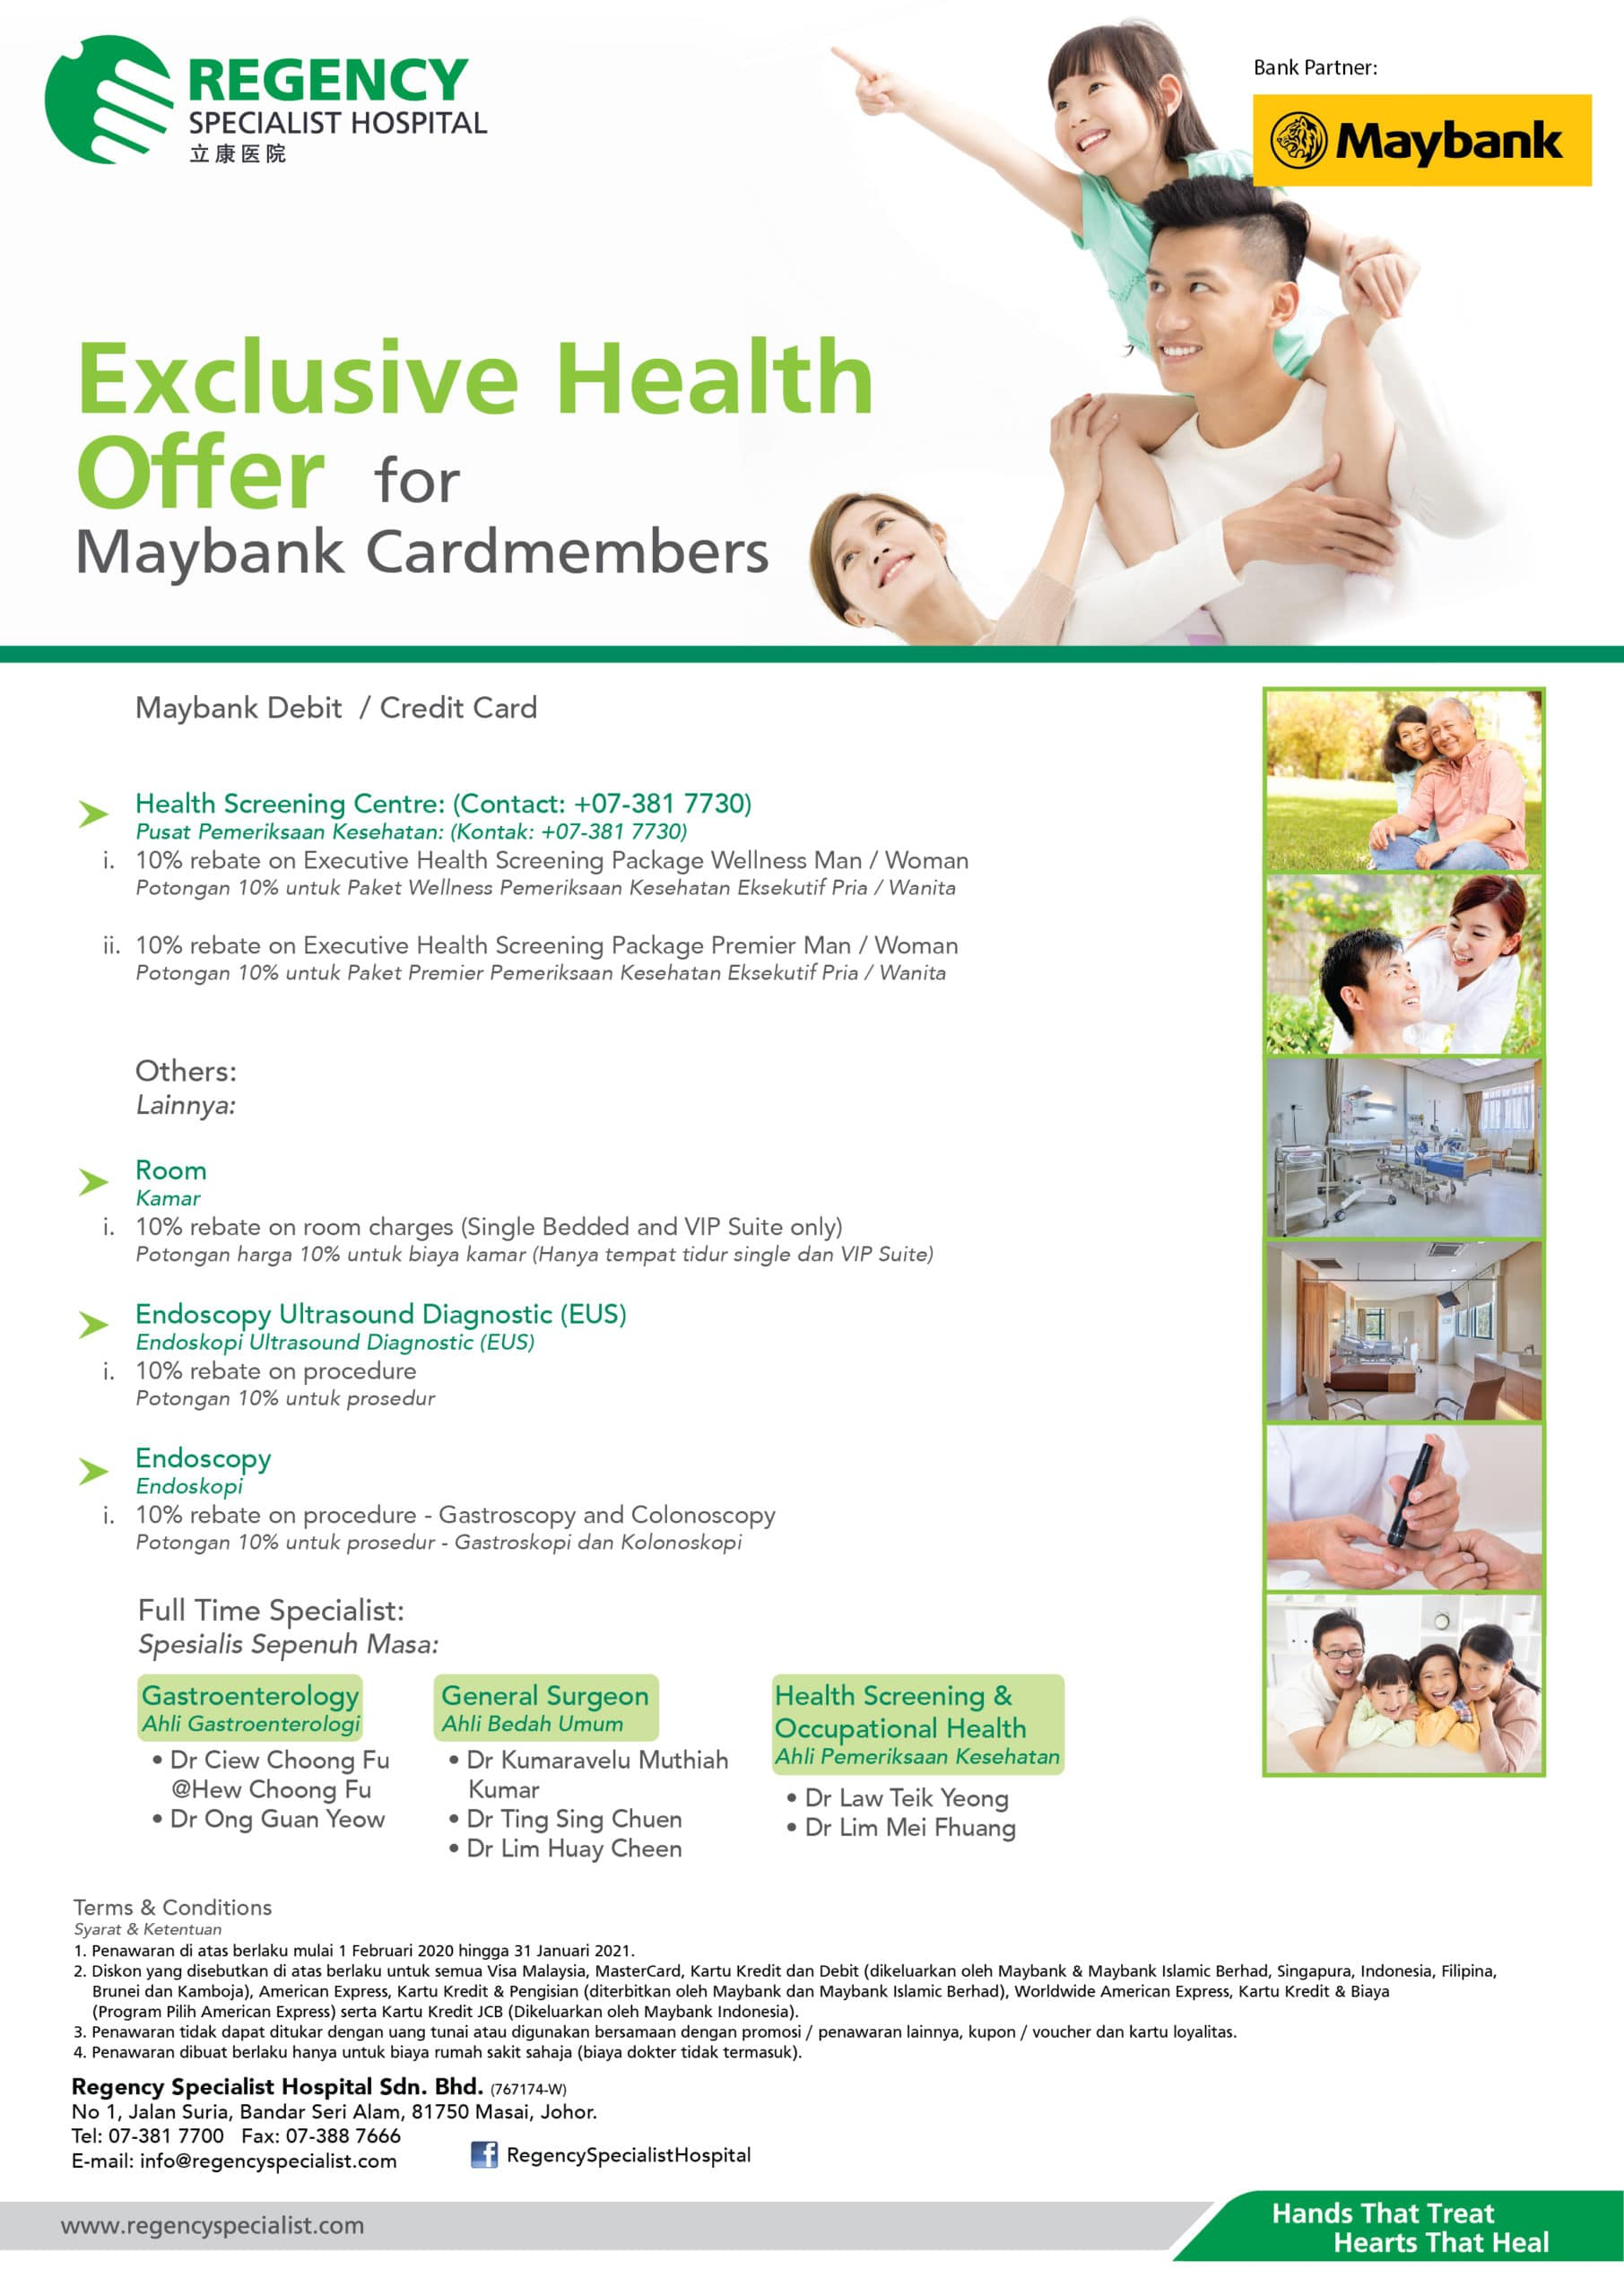 Exclusive Health Offer for Maybank Cardmembers